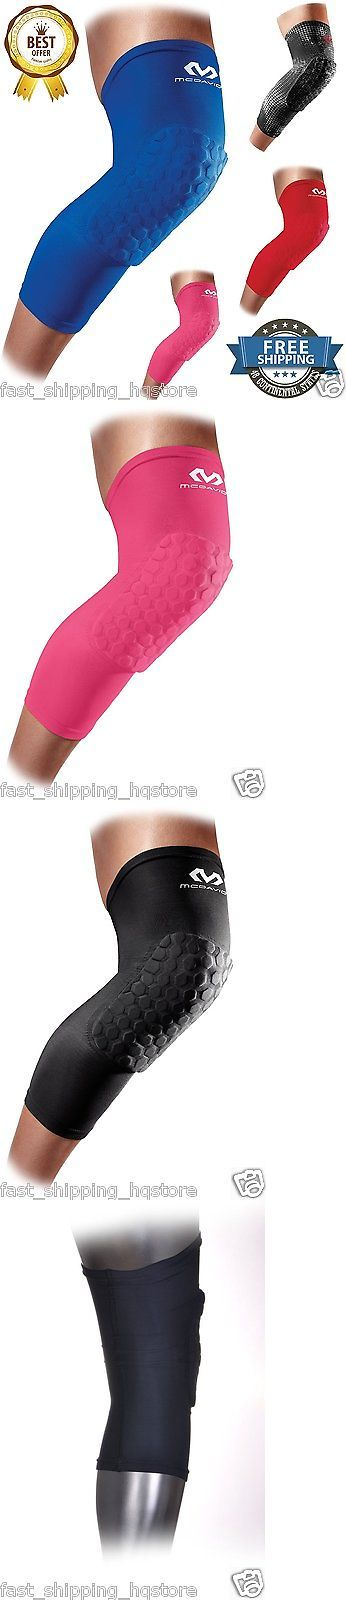 Basketball: Mcdavid Knee Pad Hex Padded Compression Leg Protecting Support Help Elbow Sleeve BUY IT NOW ONLY: $32.8